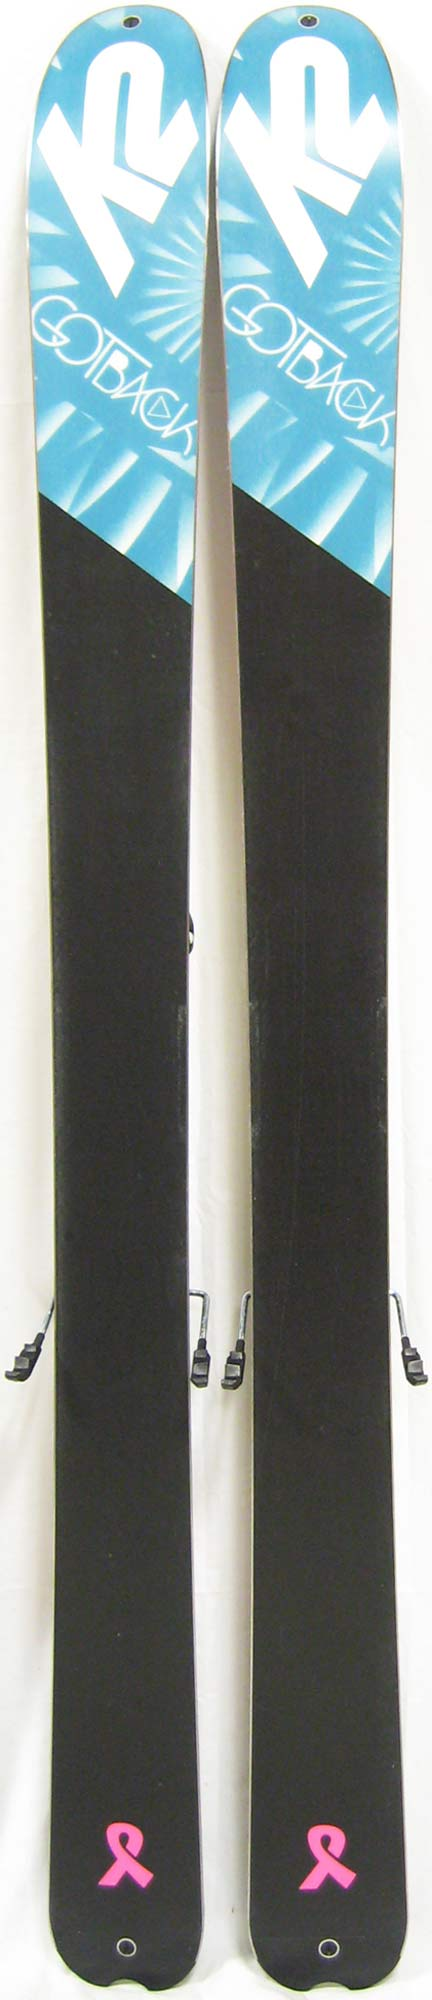 Bases of 2012 K2 GotBack Skis For Sale